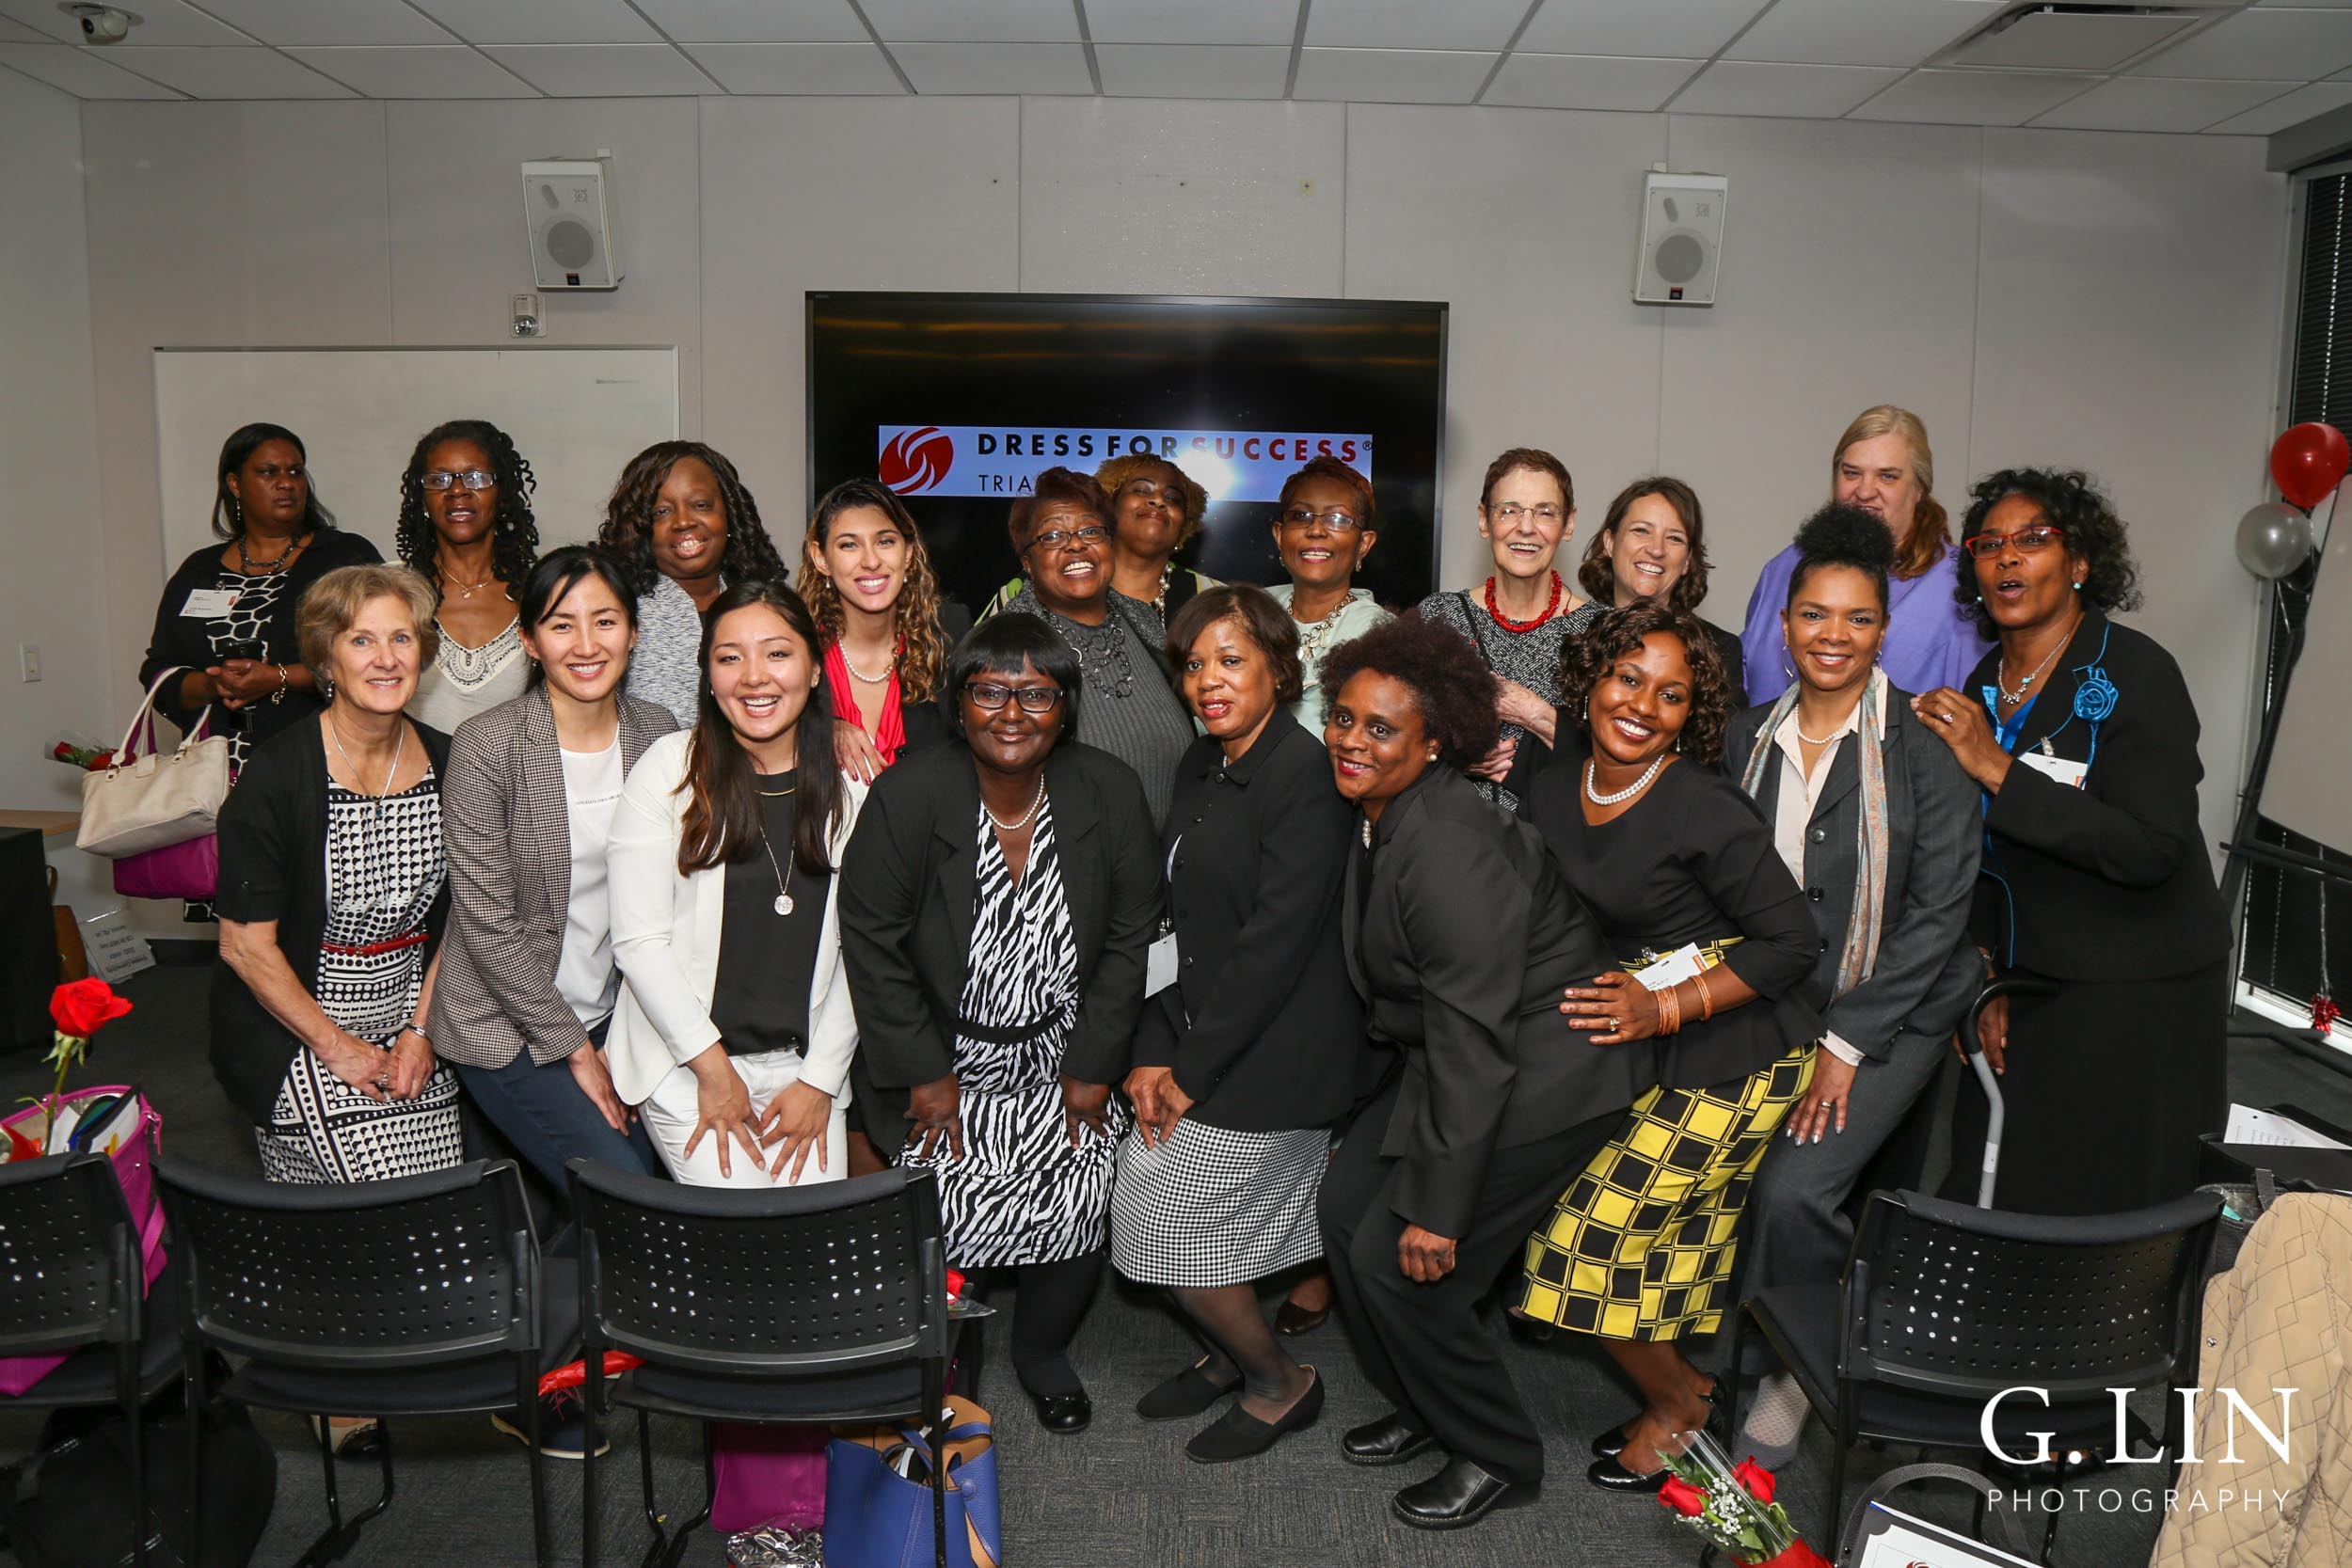 Raleigh Event Photographer | G. Lin Photography | Group picture of participants smiling at camera